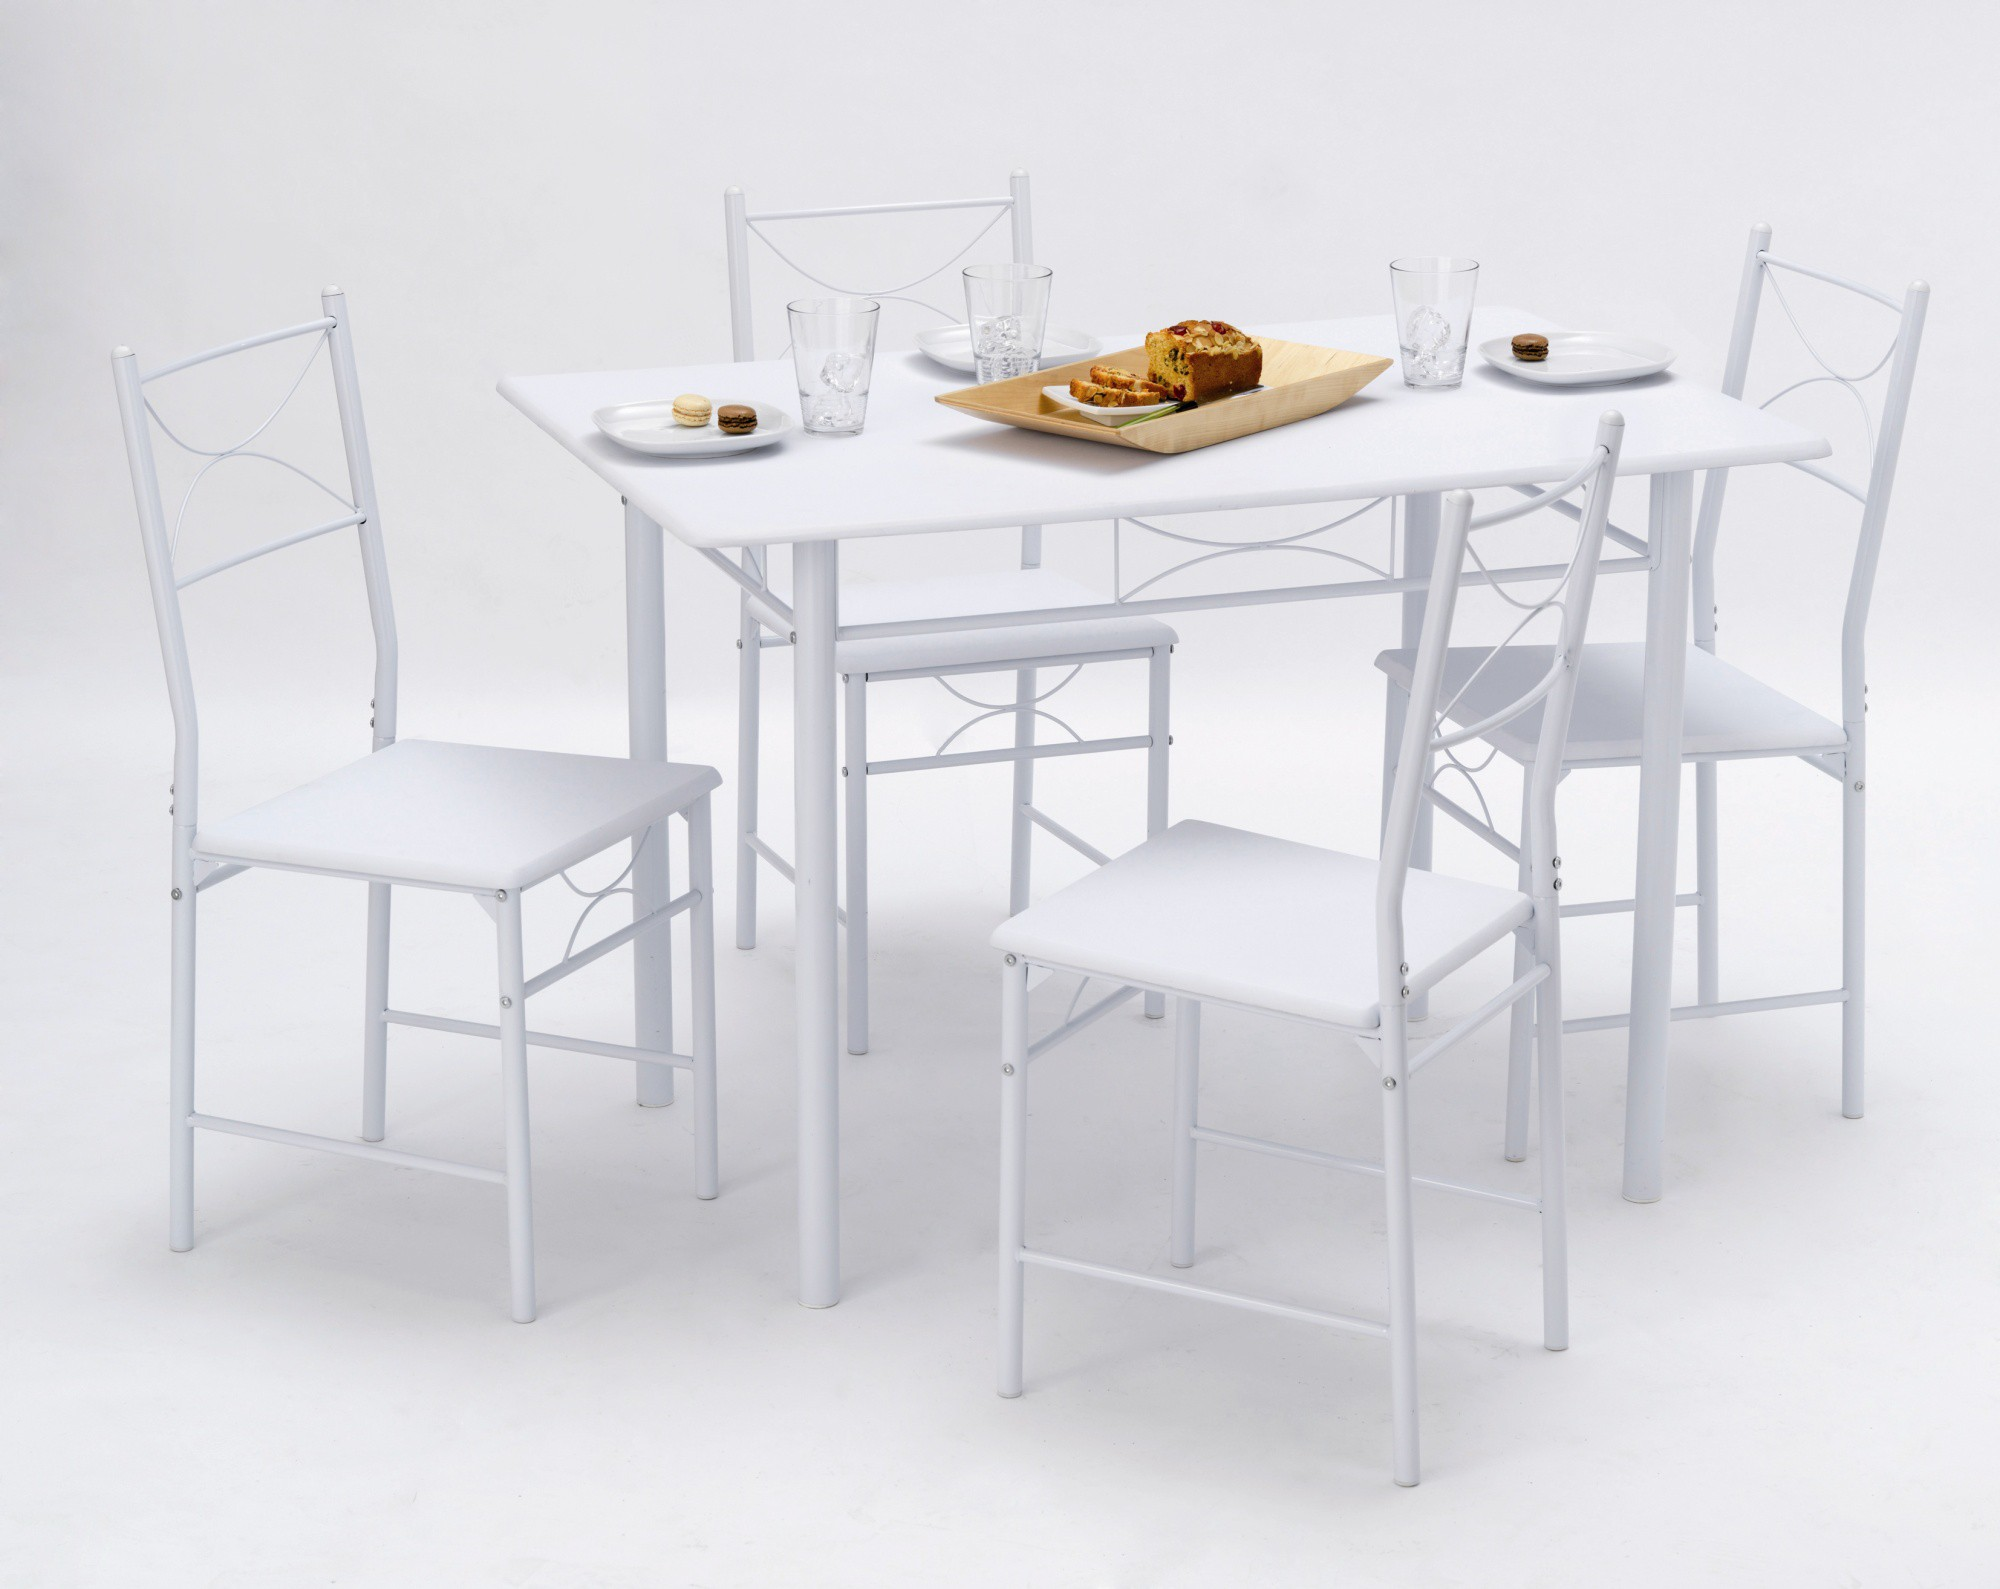 Table et chaise de cuisine moderne le monde de l a for Table et chaise integree